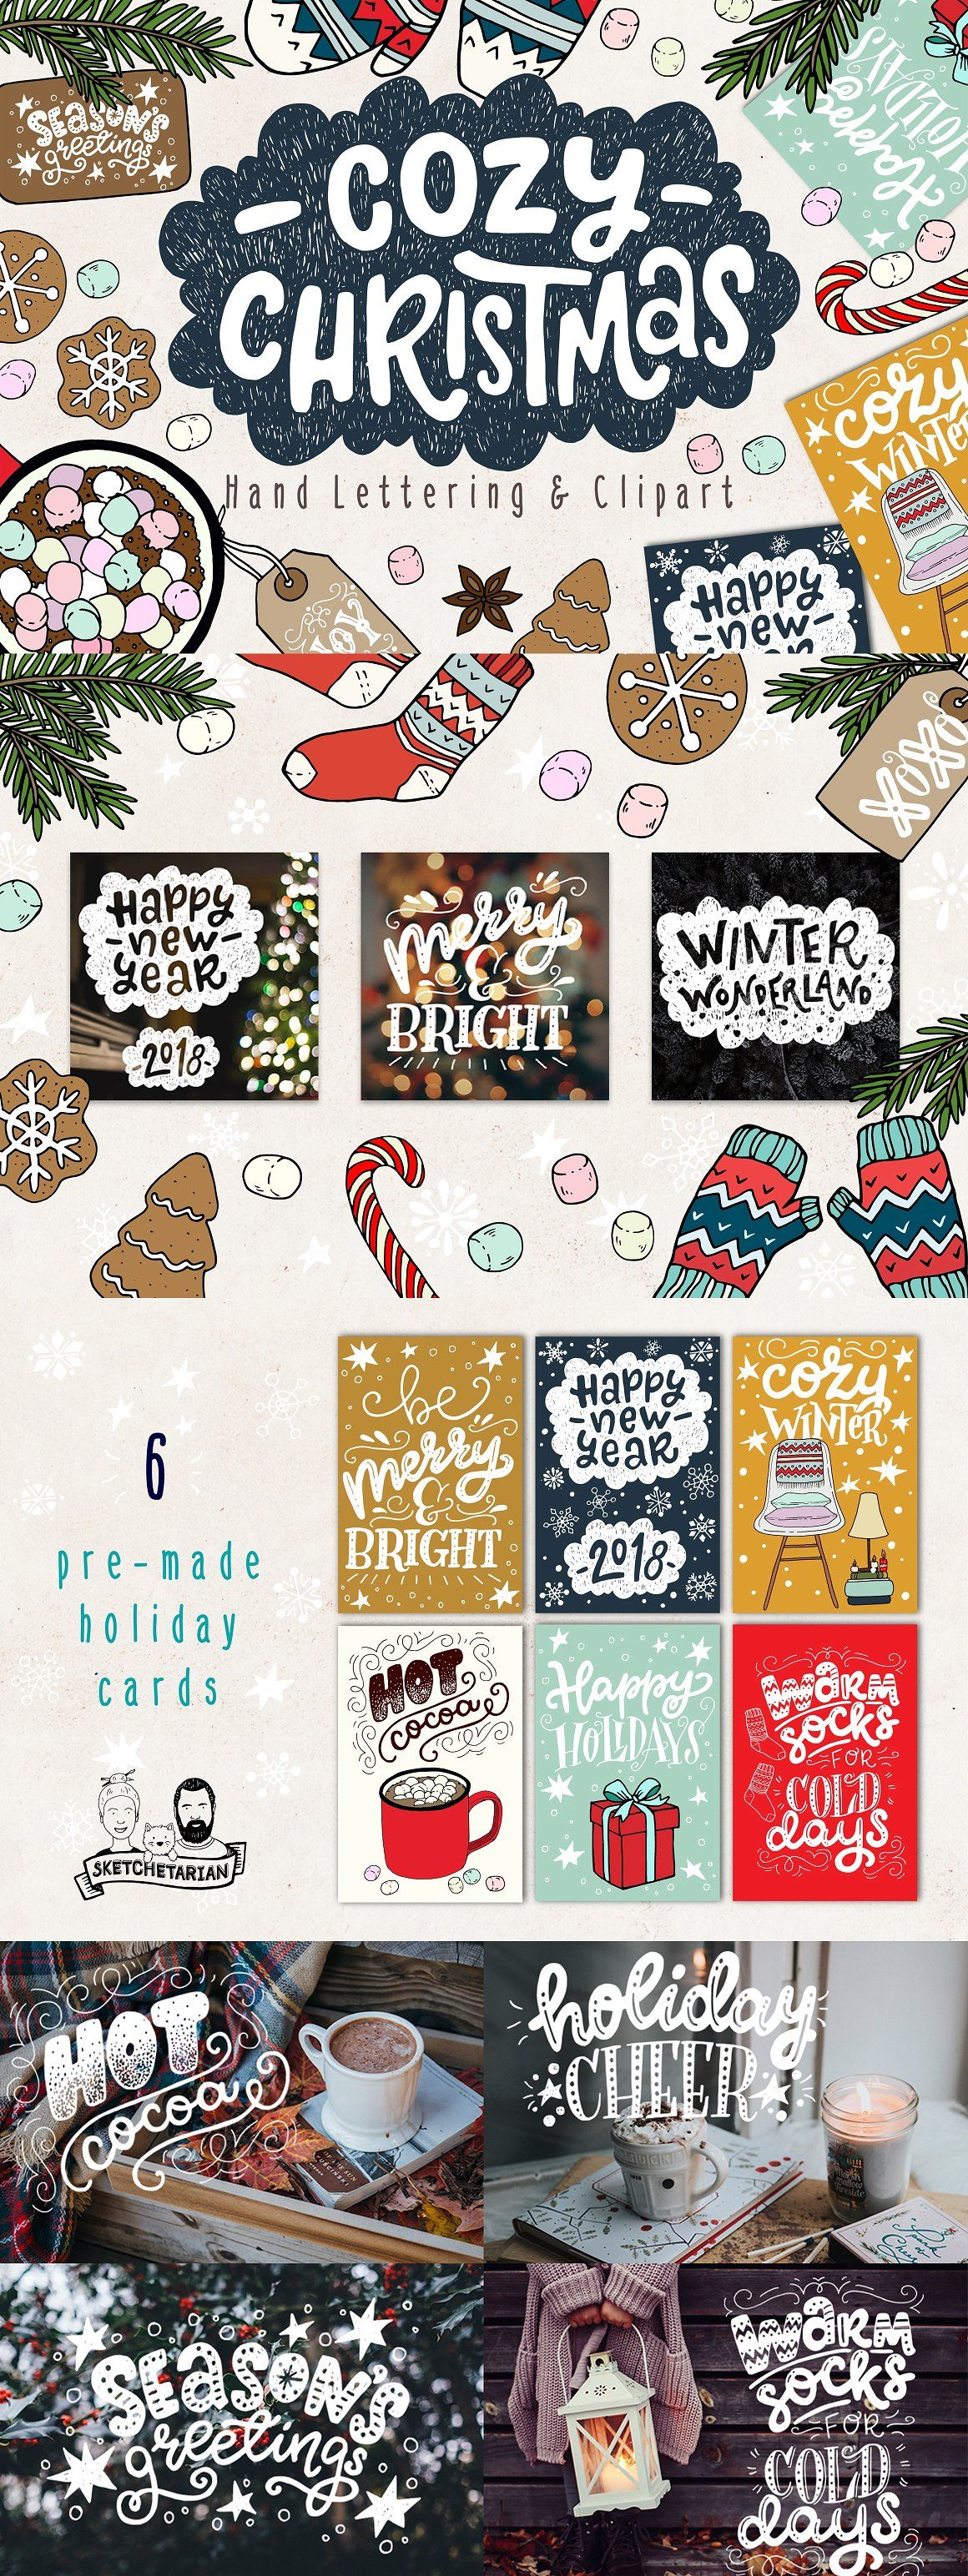 Cozy Christmas Lettering and Clipart Illustrations on